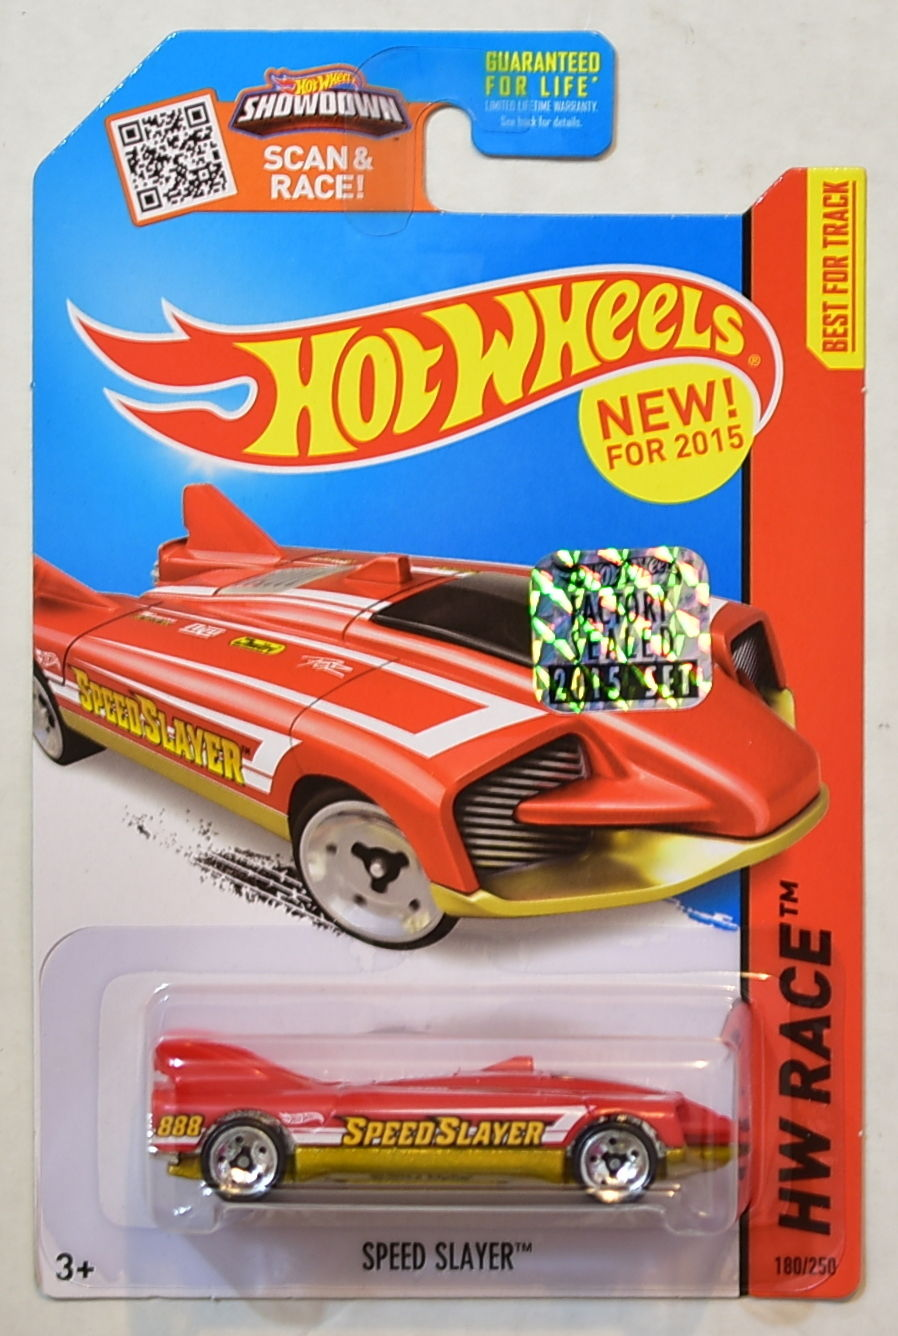 HOT WHEELS 2015 HW RACE - TRACK ACES SPEED SLAYER FACTORY SEALED